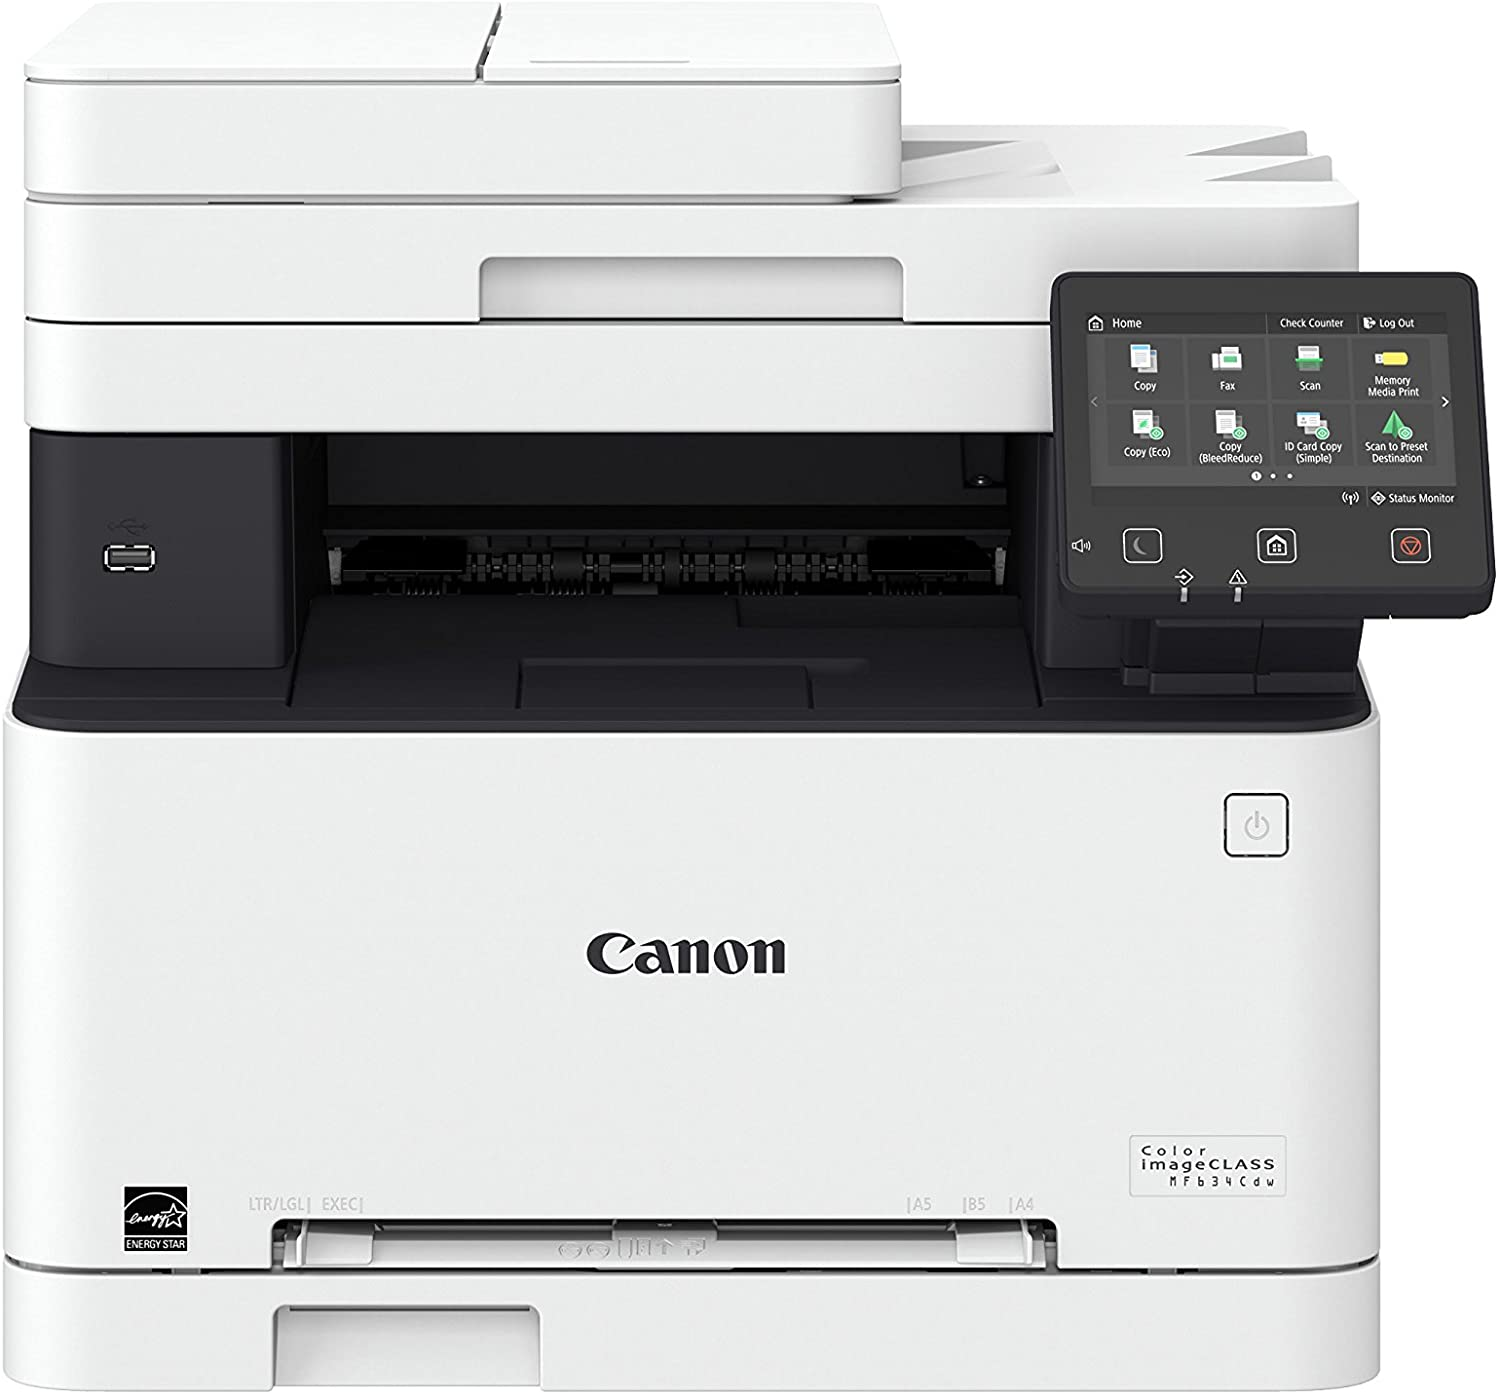 Canon Color imageCLASS MF634Cdw - Affordable Printers